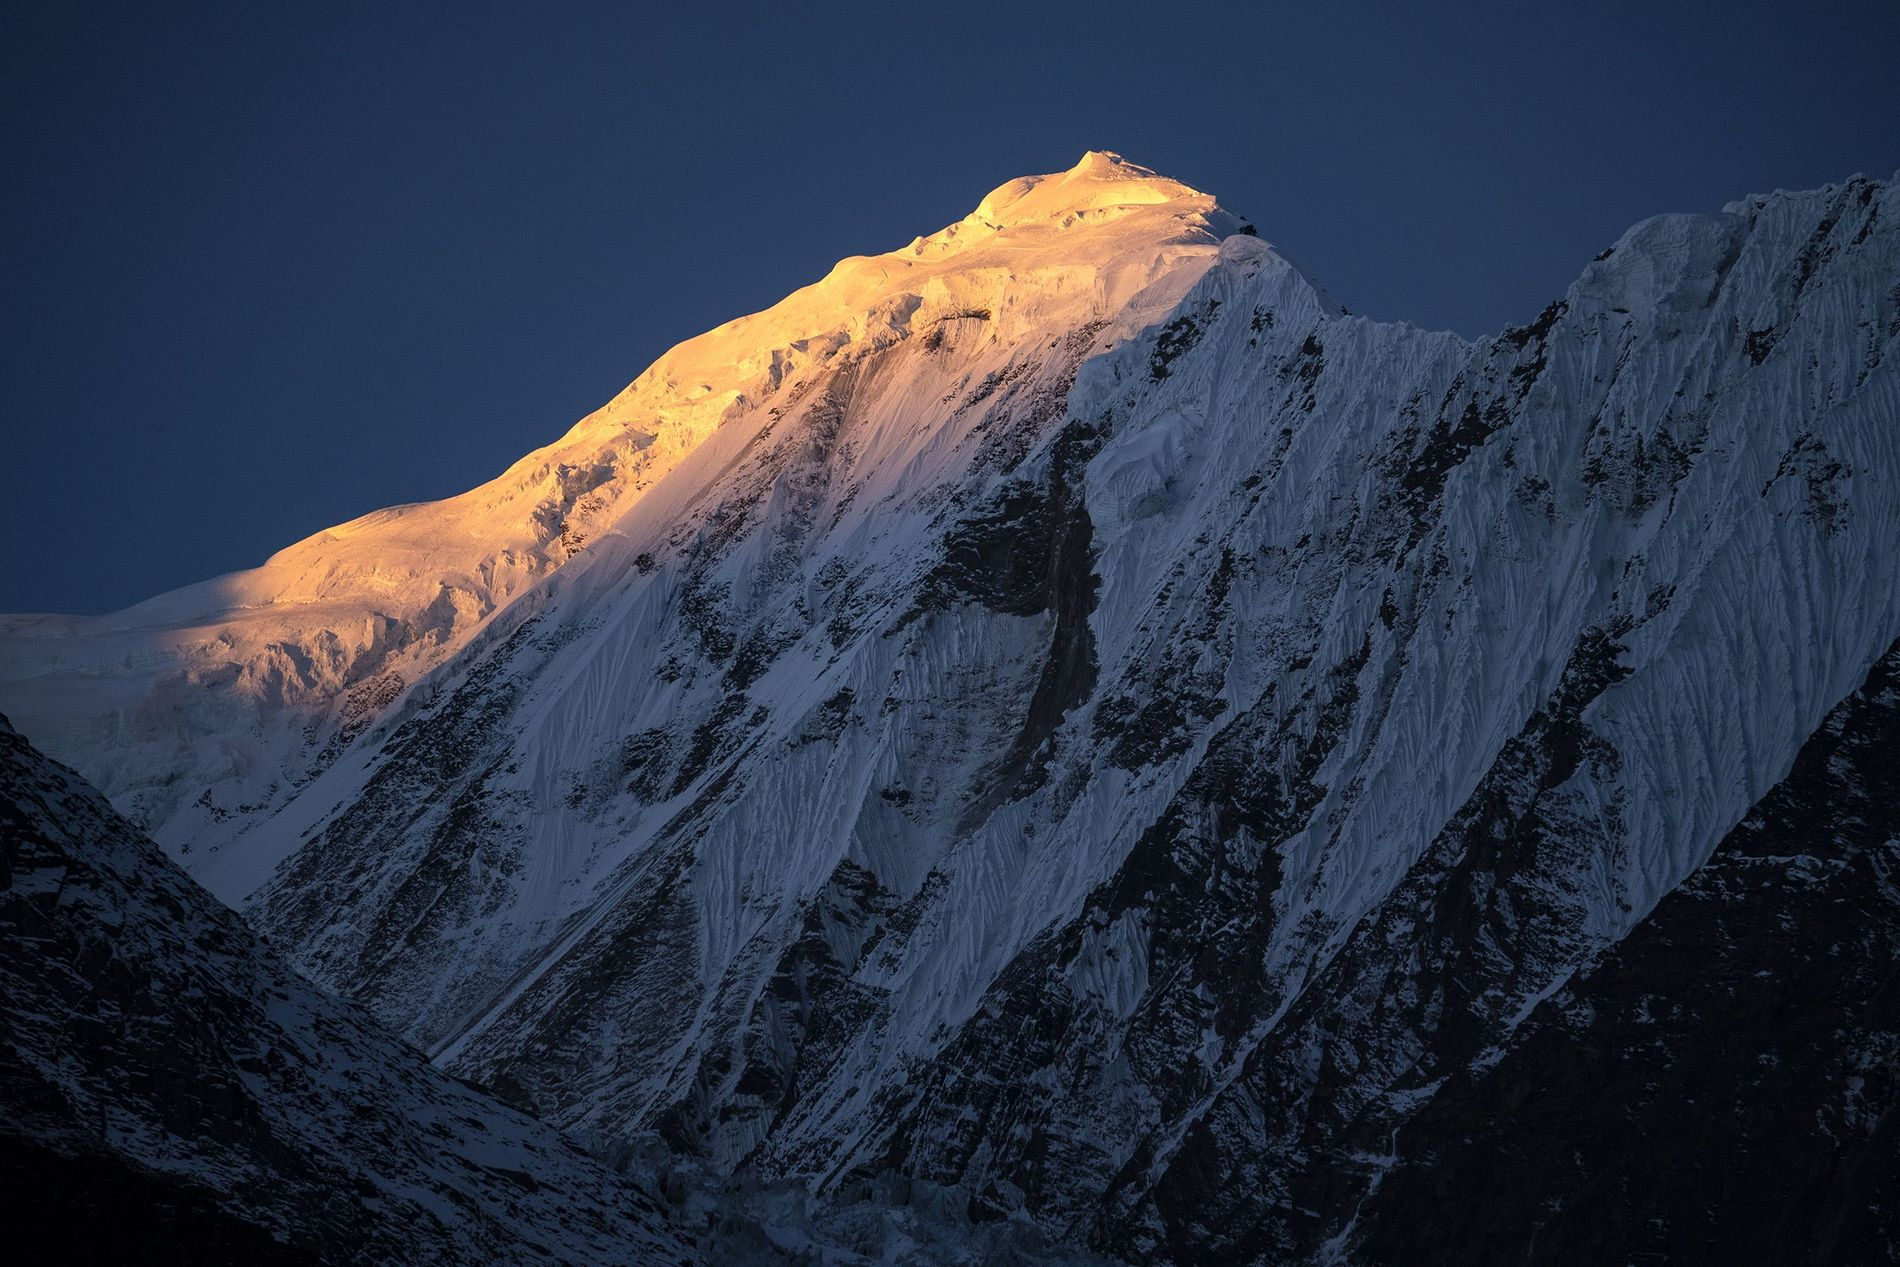 Sunrise strikes the Himalayan peaks on November 8, 2018, as seen from Manang, Nepal.  ...